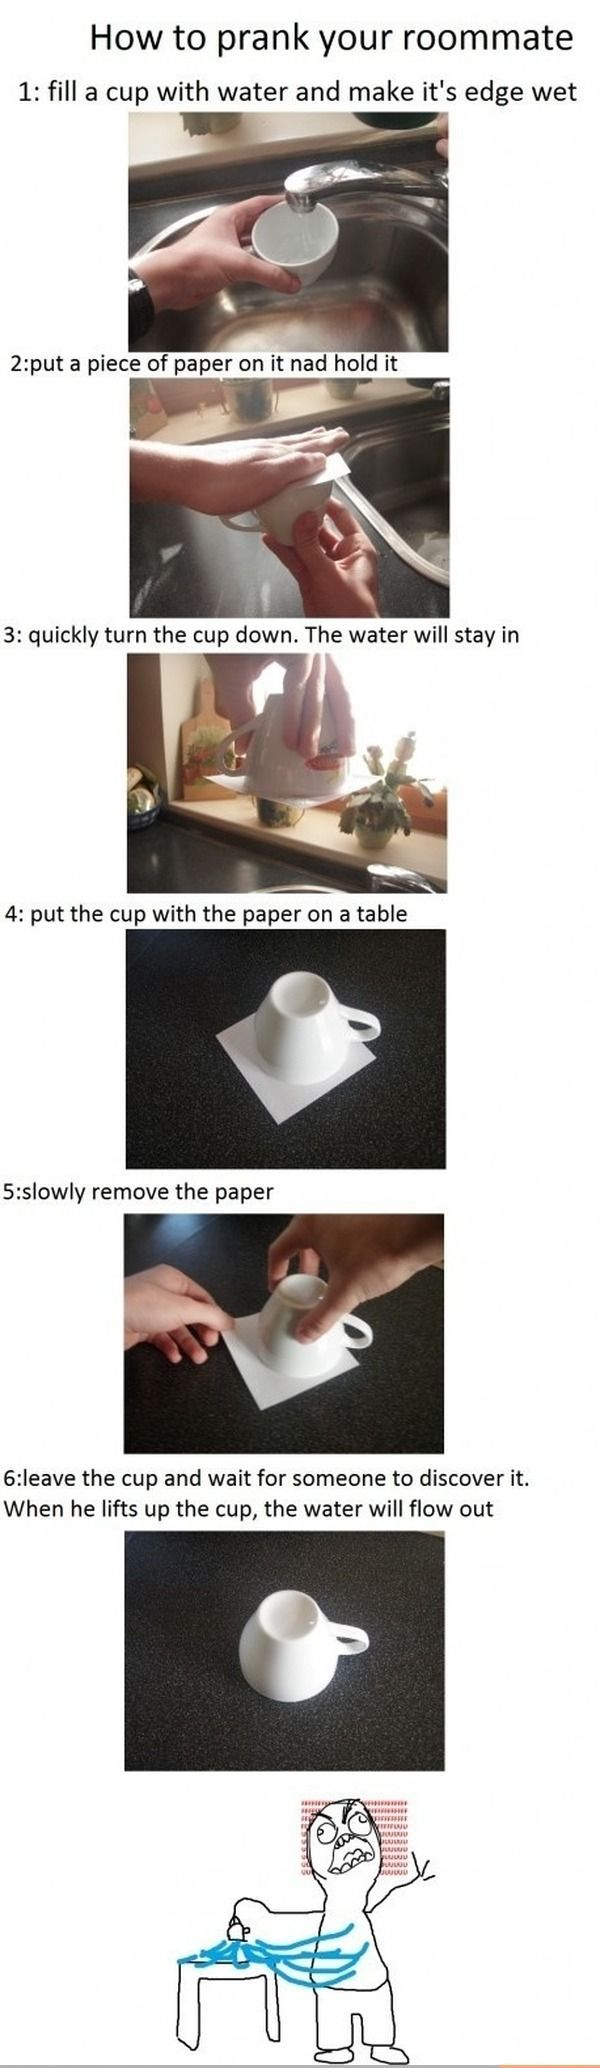 I've already tried this... It doesn't work... Don't believe me... Why do u think the last picture is a drawing? Mhm...